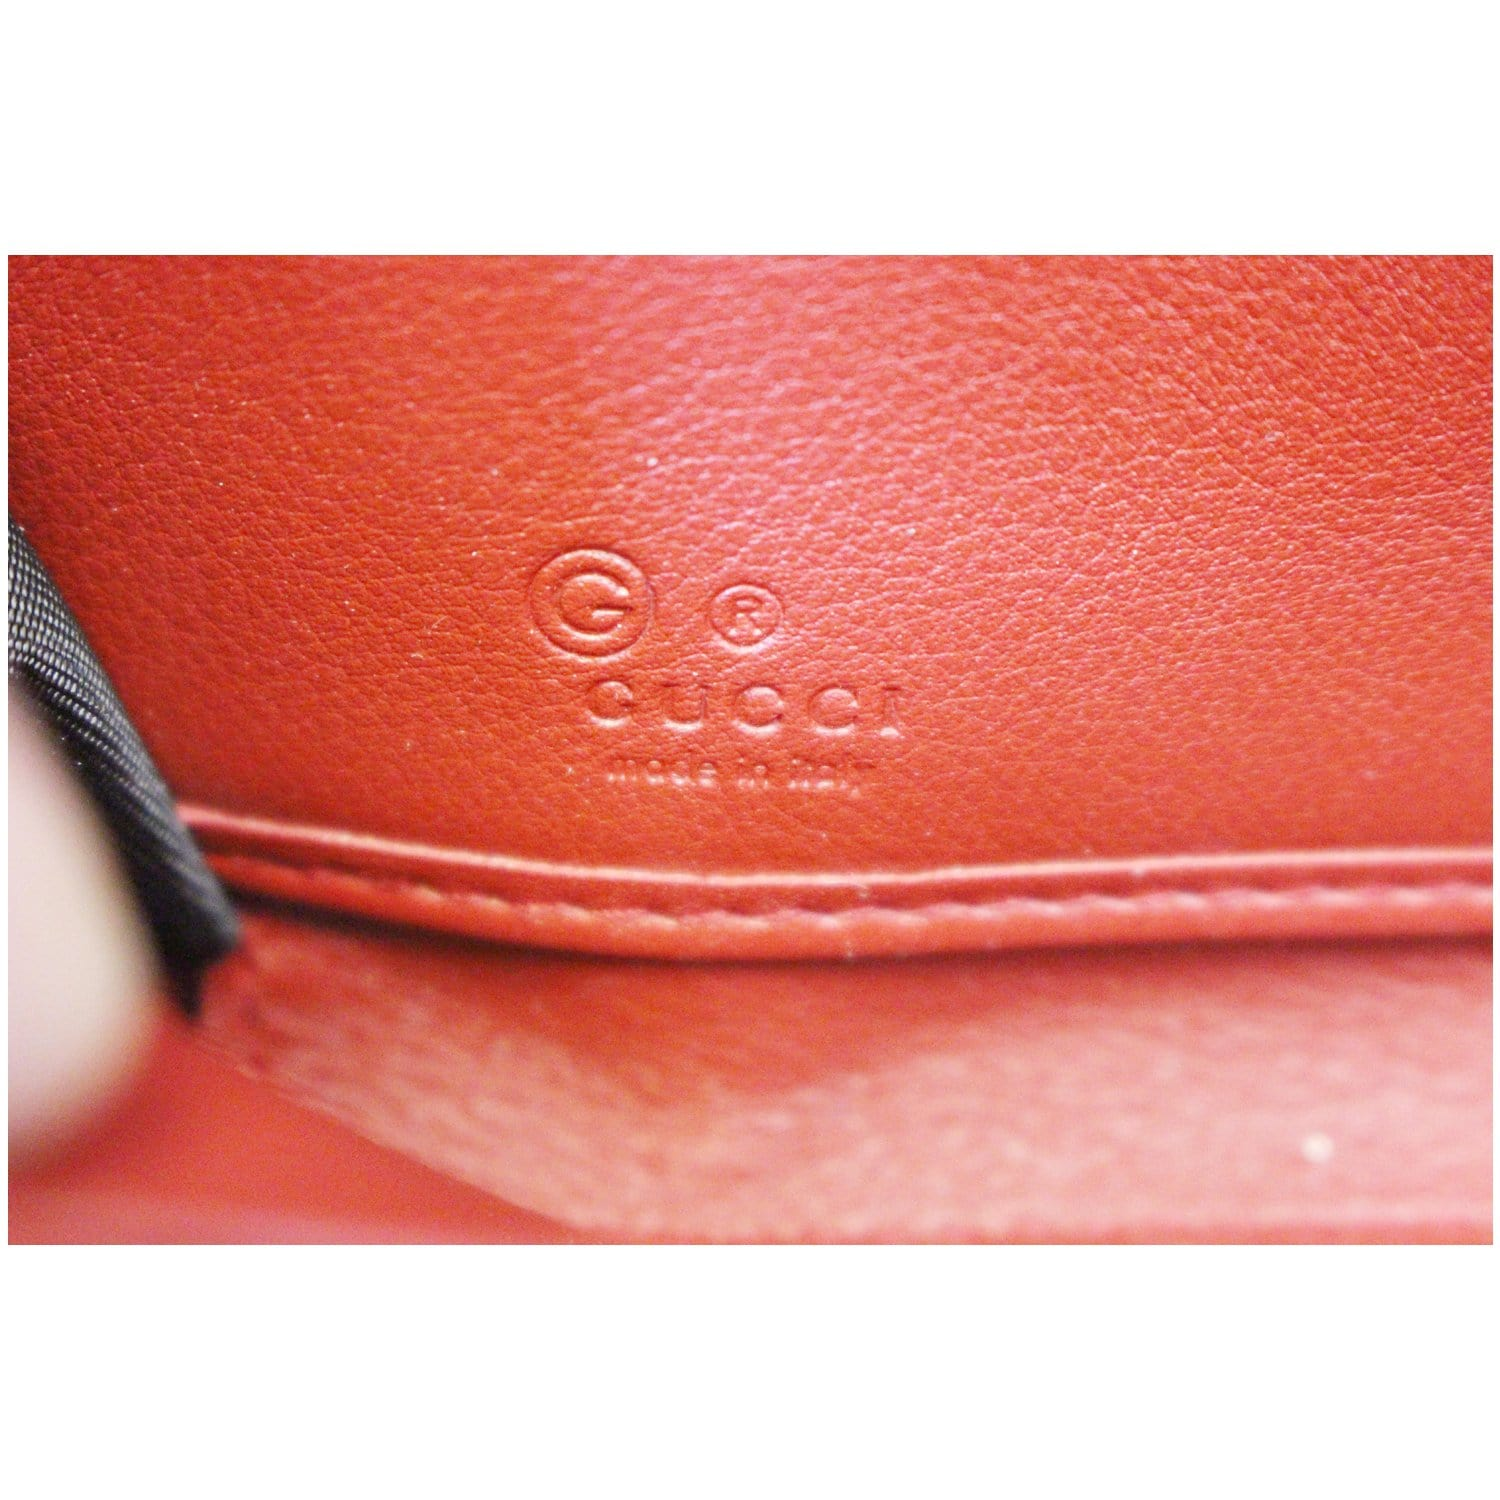 08b805942289 GUCCI Leather Micro GG Guccissima Zip Around Wallet Red-US